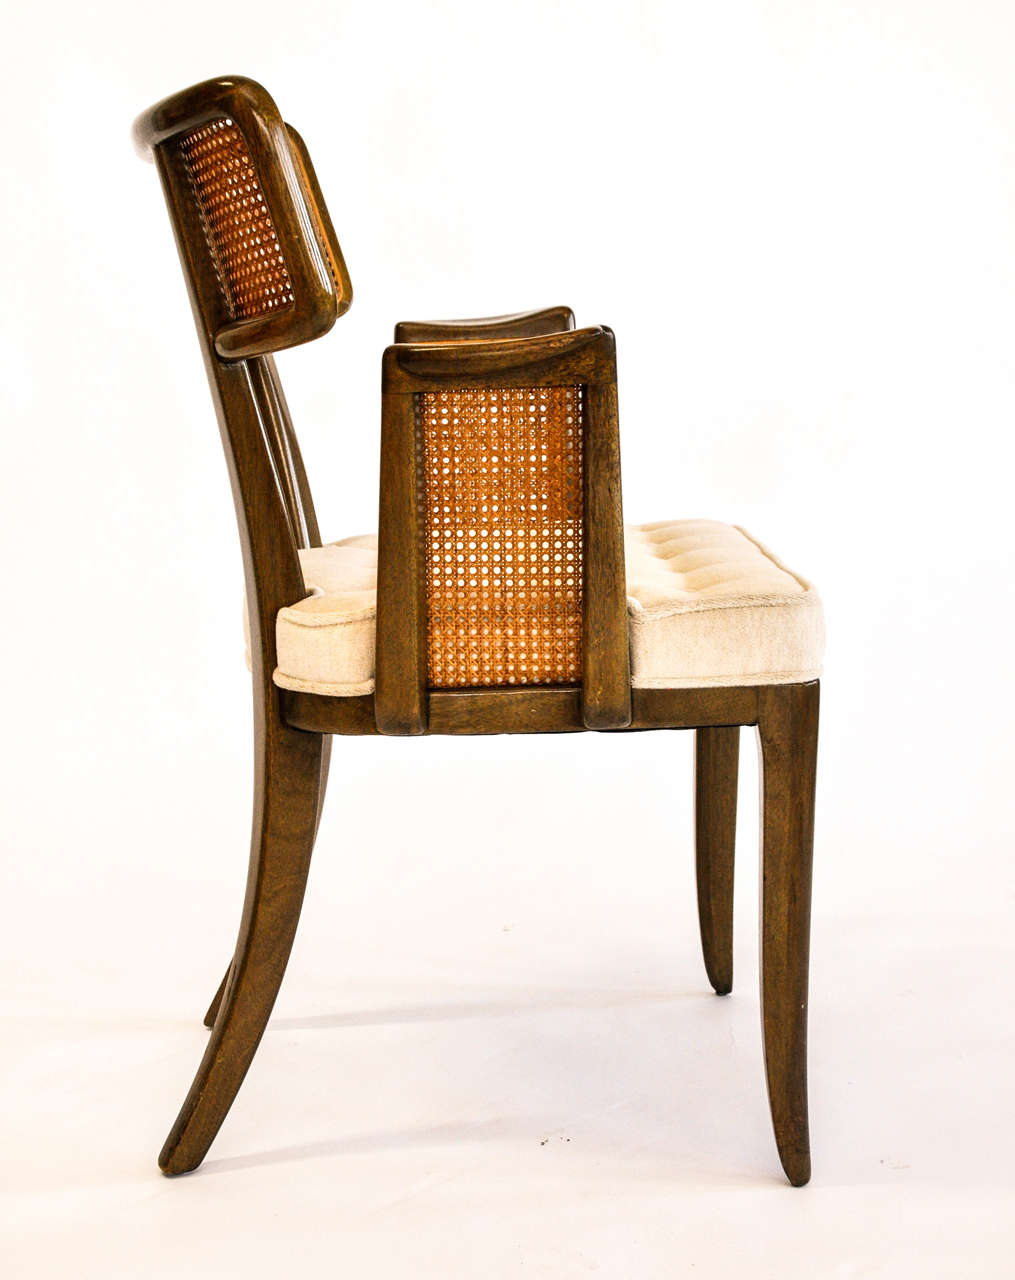 Set of 6 Dining Chairs by Edward Wormley for Dunbar, 1950s - The Exchange Int